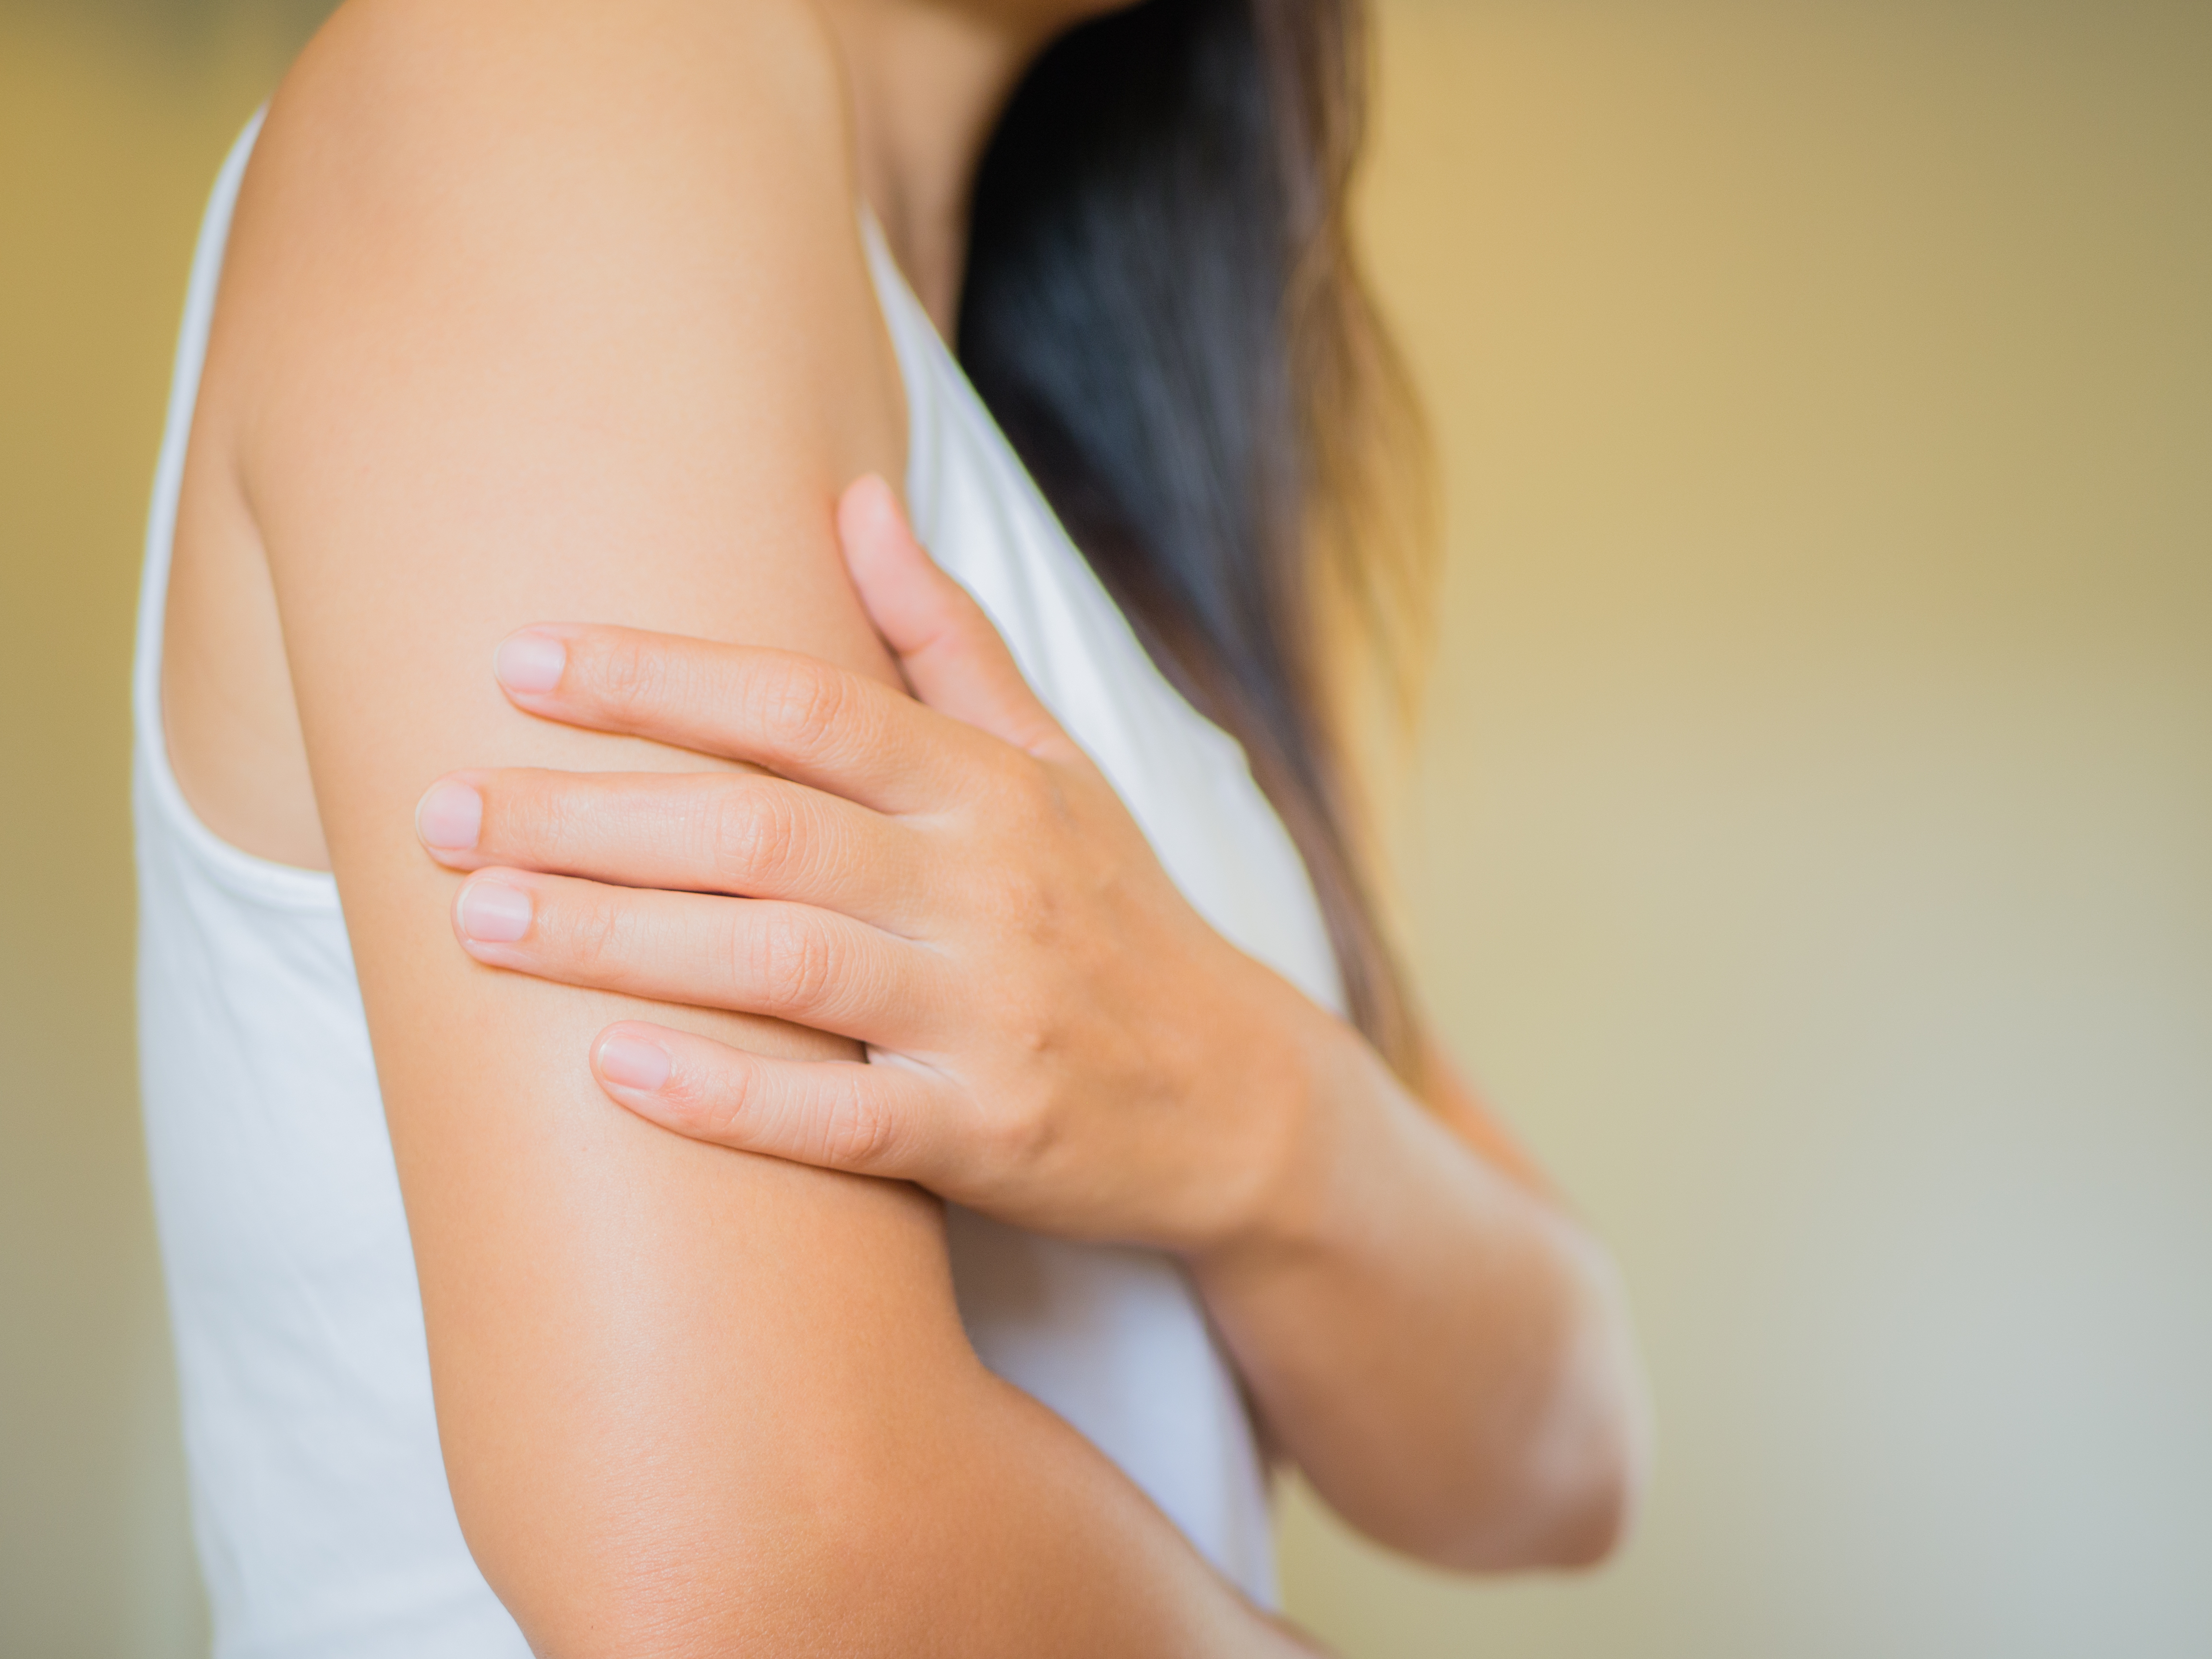 Acne on the arms above the elbow: how to get rid of it